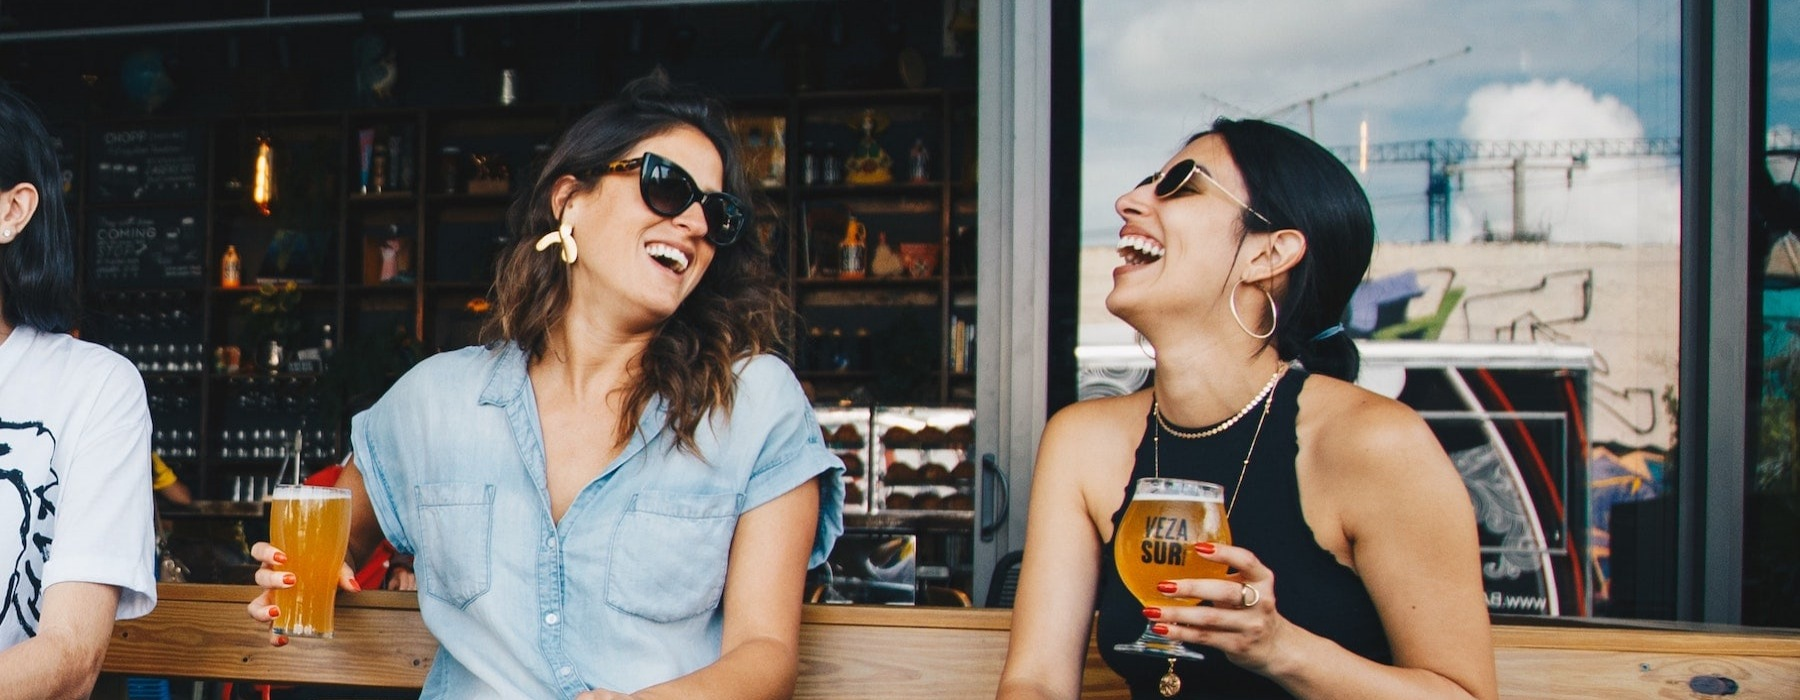 lifestyle image of two people laughing outdoors with drinks